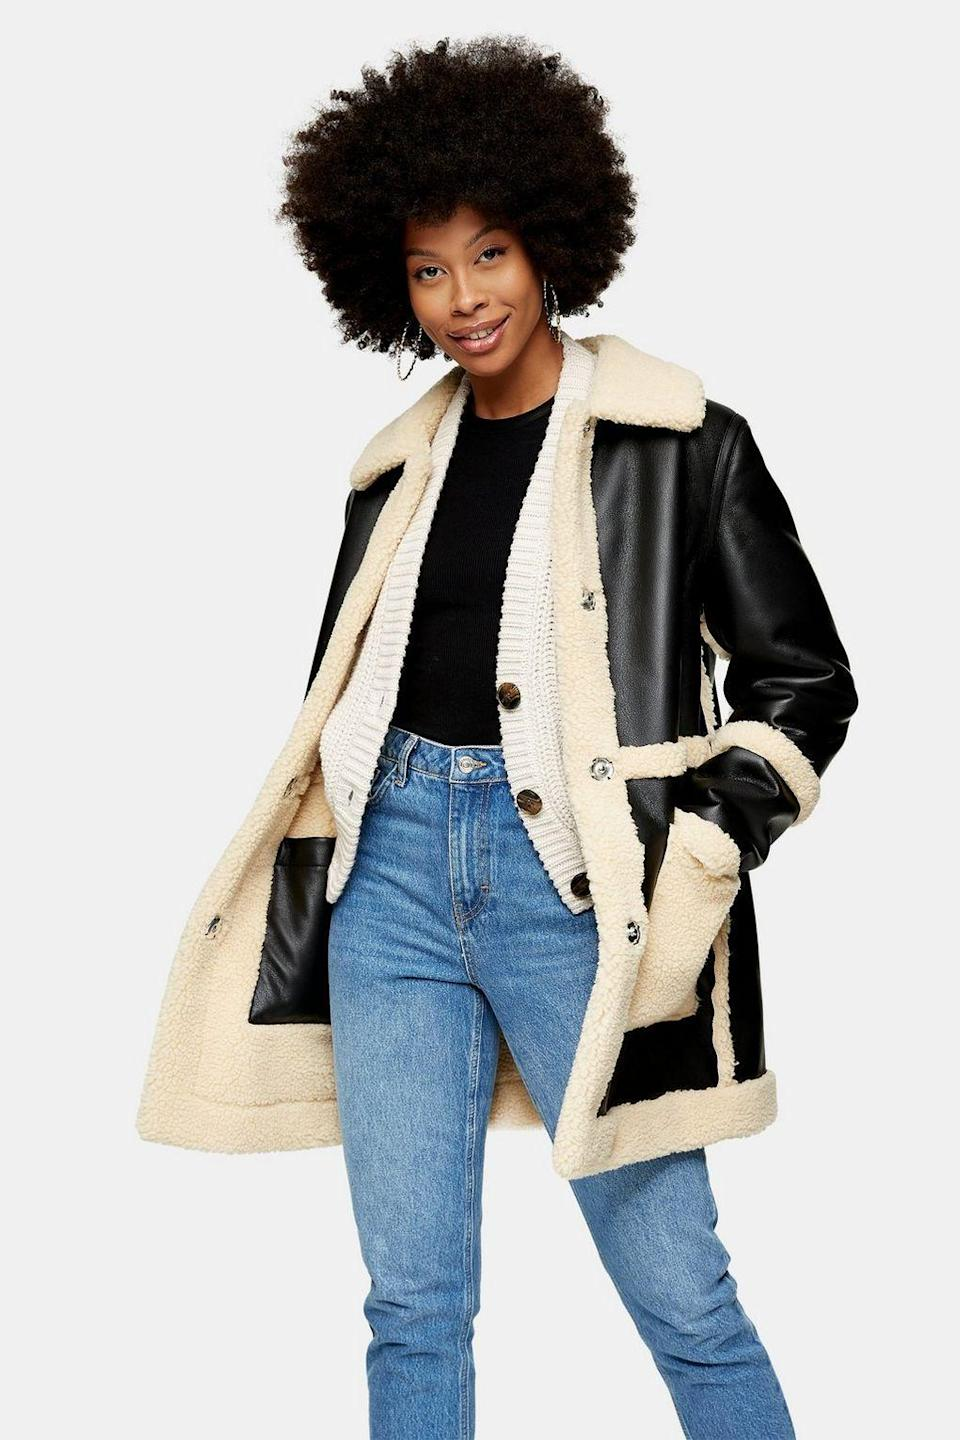 """<p><strong>Topshop</strong></p><p>topshop.com</p><p><strong>$150.00</strong></p><p><a href=""""https://go.redirectingat.com?id=74968X1596630&url=https%3A%2F%2Fus.topshop.com%2Fen%2Ftsus%2Fproduct%2Ftallraven-reverse-borg-9754114&sref=https%3A%2F%2Fwww.cosmopolitan.com%2Fstyle-beauty%2Ffashion%2Fg30256598%2Ffashion-trends-2020%2F"""" rel=""""nofollow noopener"""" target=""""_blank"""" data-ylk=""""slk:Shop Now"""" class=""""link rapid-noclick-resp"""">Shop Now</a></p><p>Yep, this jacket is a must-have. And what makes it even better? It's reversible!</p>"""